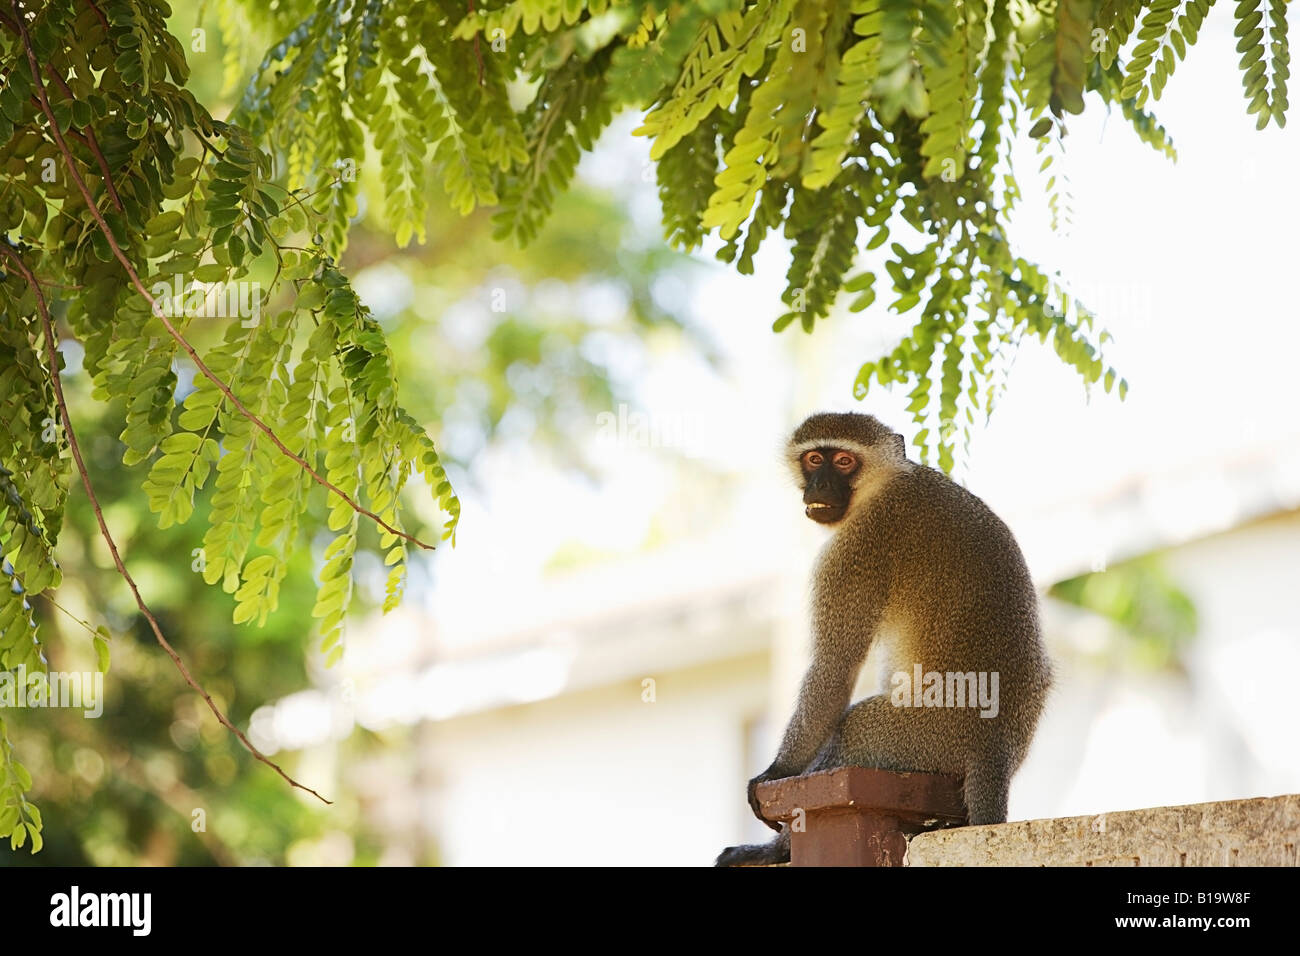 Monkey sitting on a fence post - Stock Image